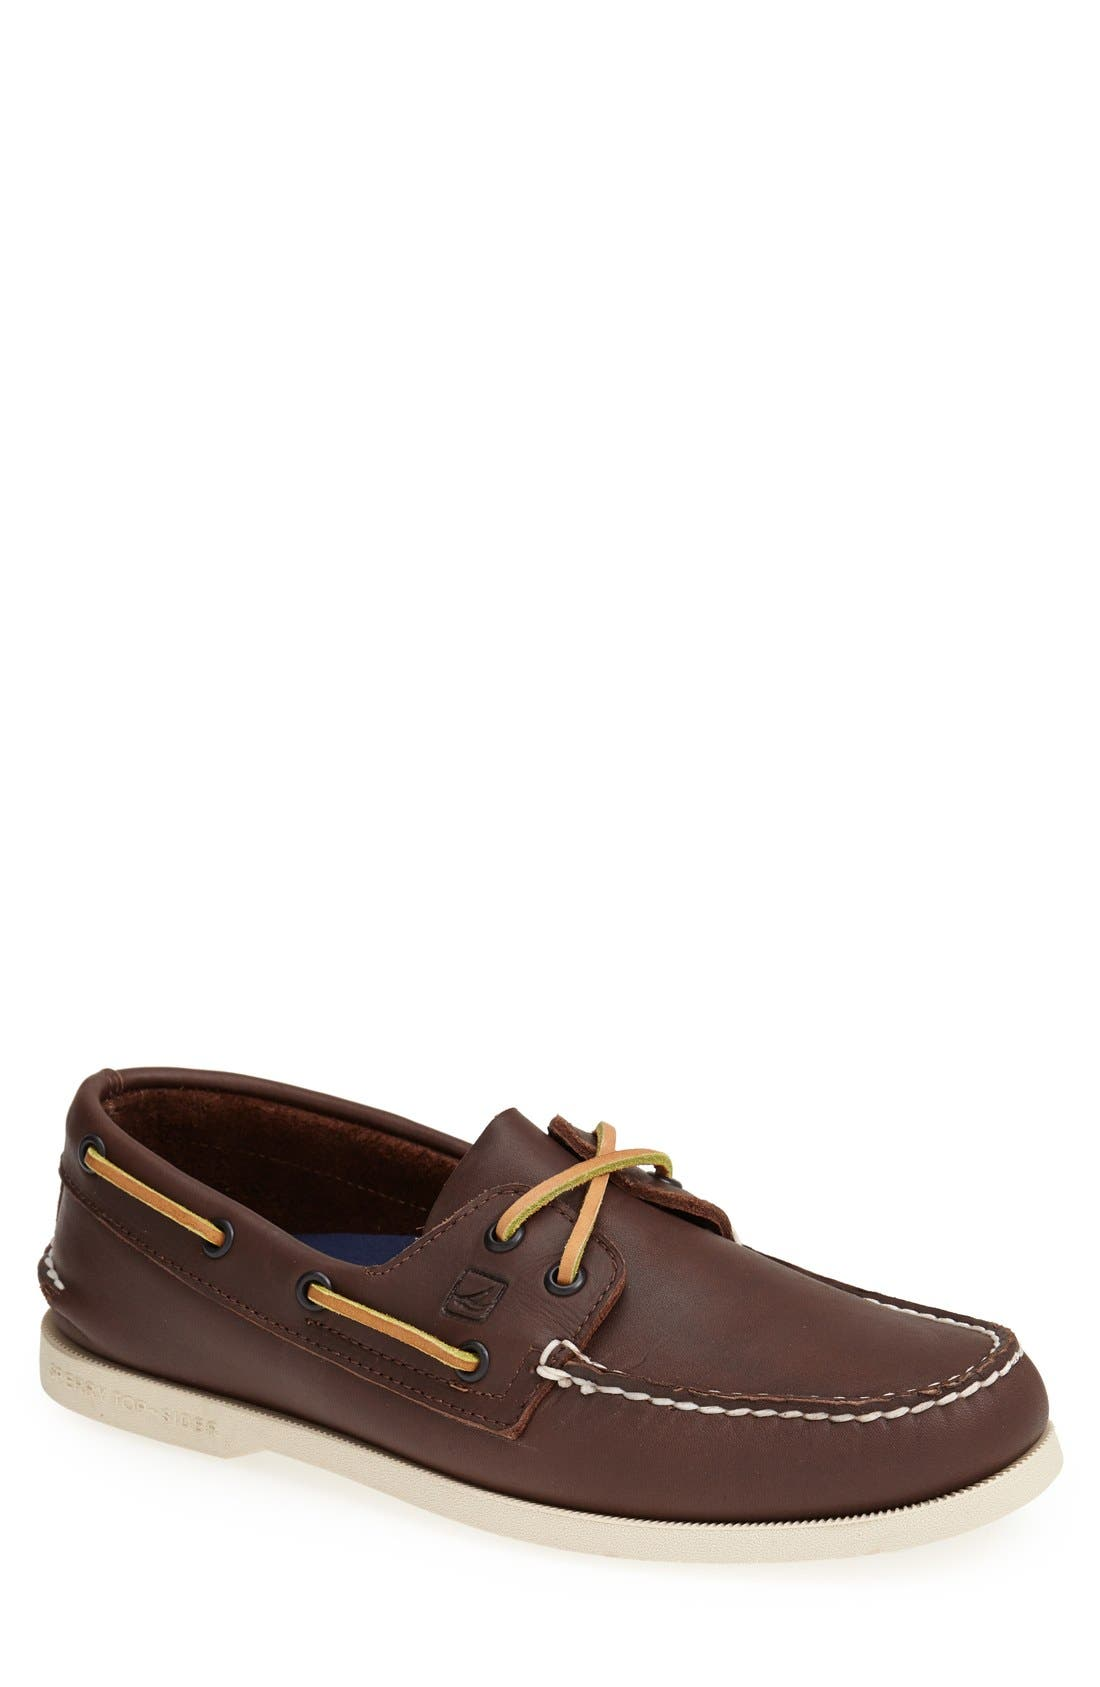 SPERRY Authentic Original Boat Shoe